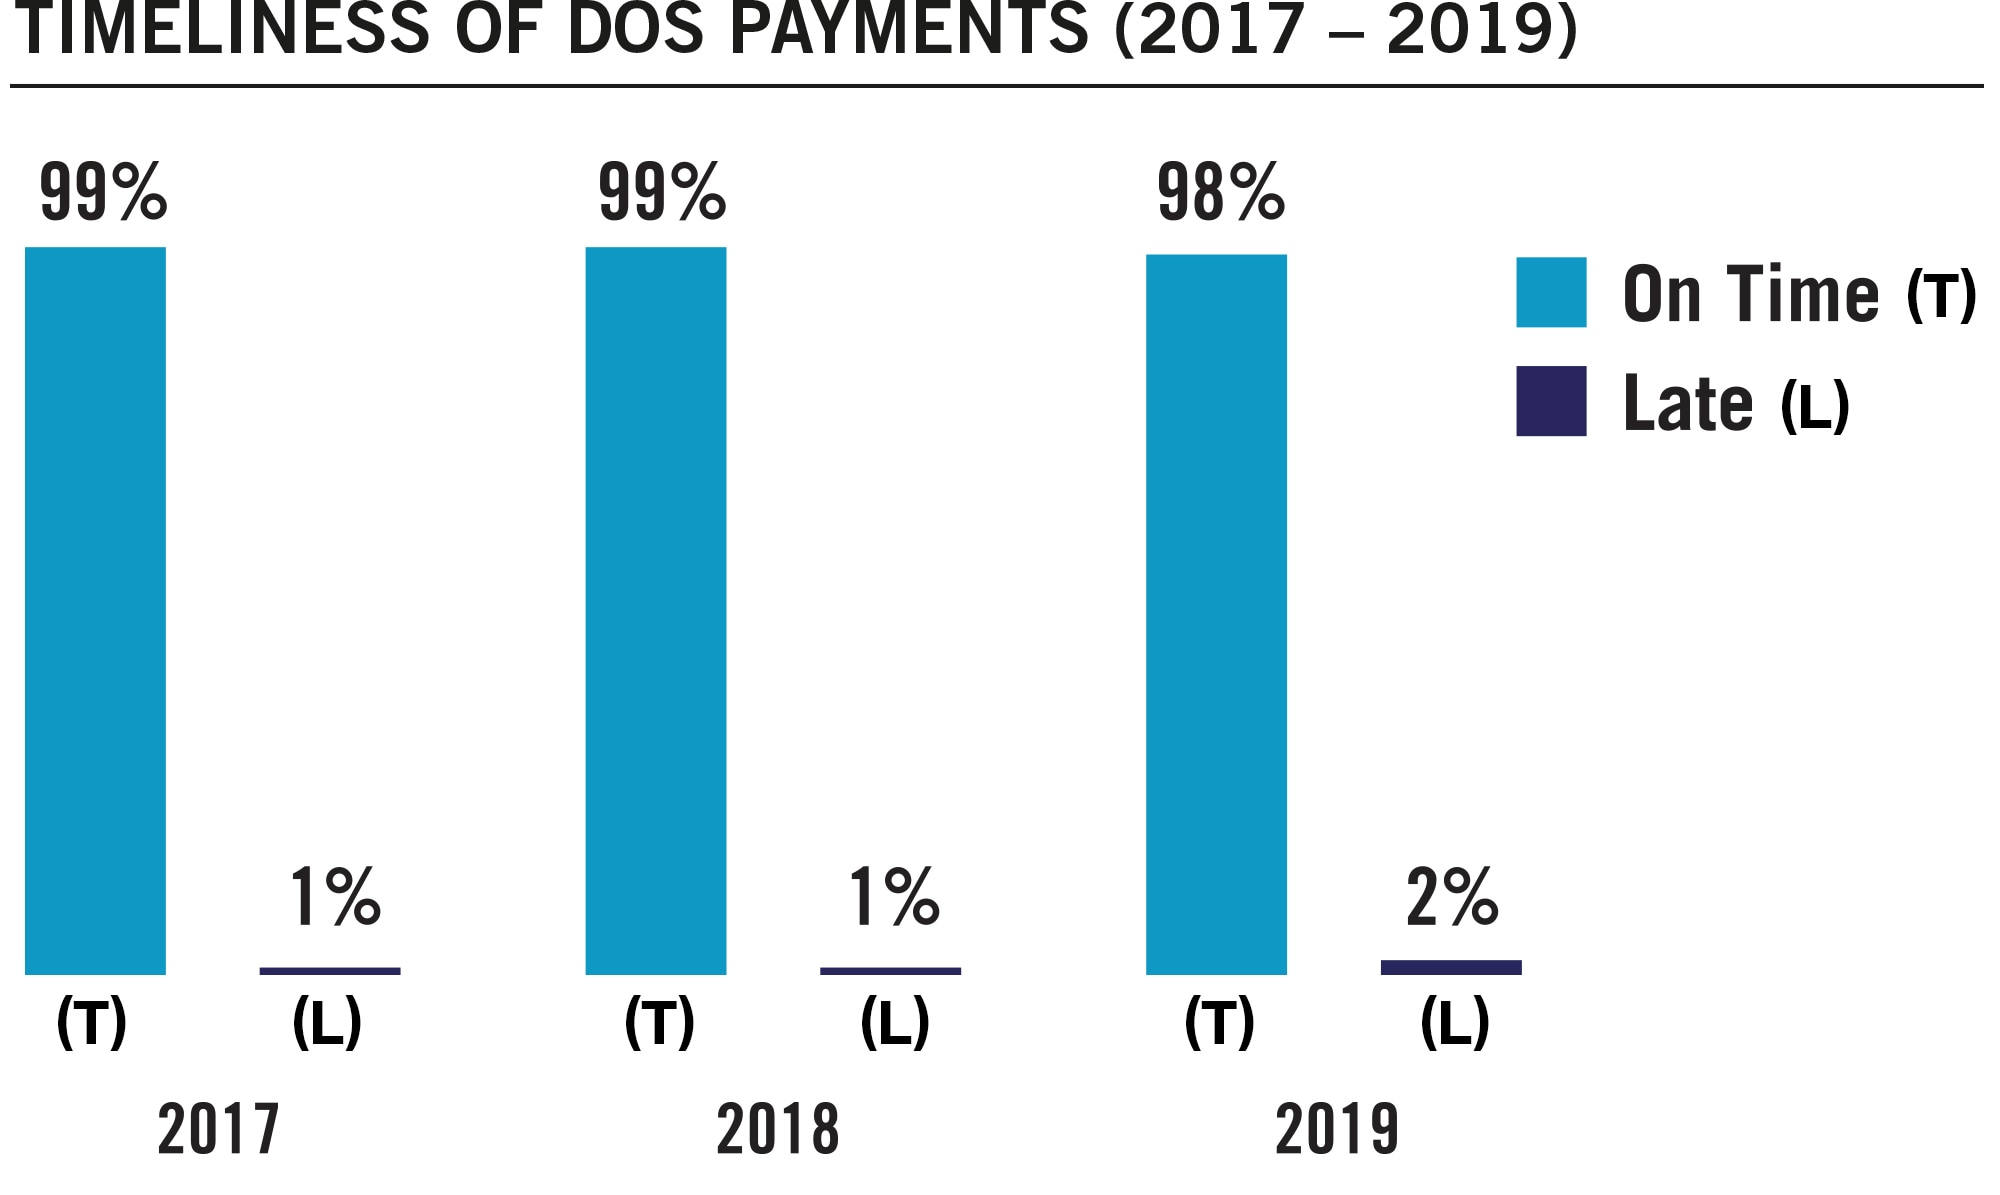 Bar chart summarizing timeliness of Department of State payments for fiscal years 2017 to 2019. Values are as follows: FY 2017: On Time: 99%. Late: 1%. FY 2018: On Time: 99%. Late: 1%. FY 2019: On Time: 98%. Late: 2%.